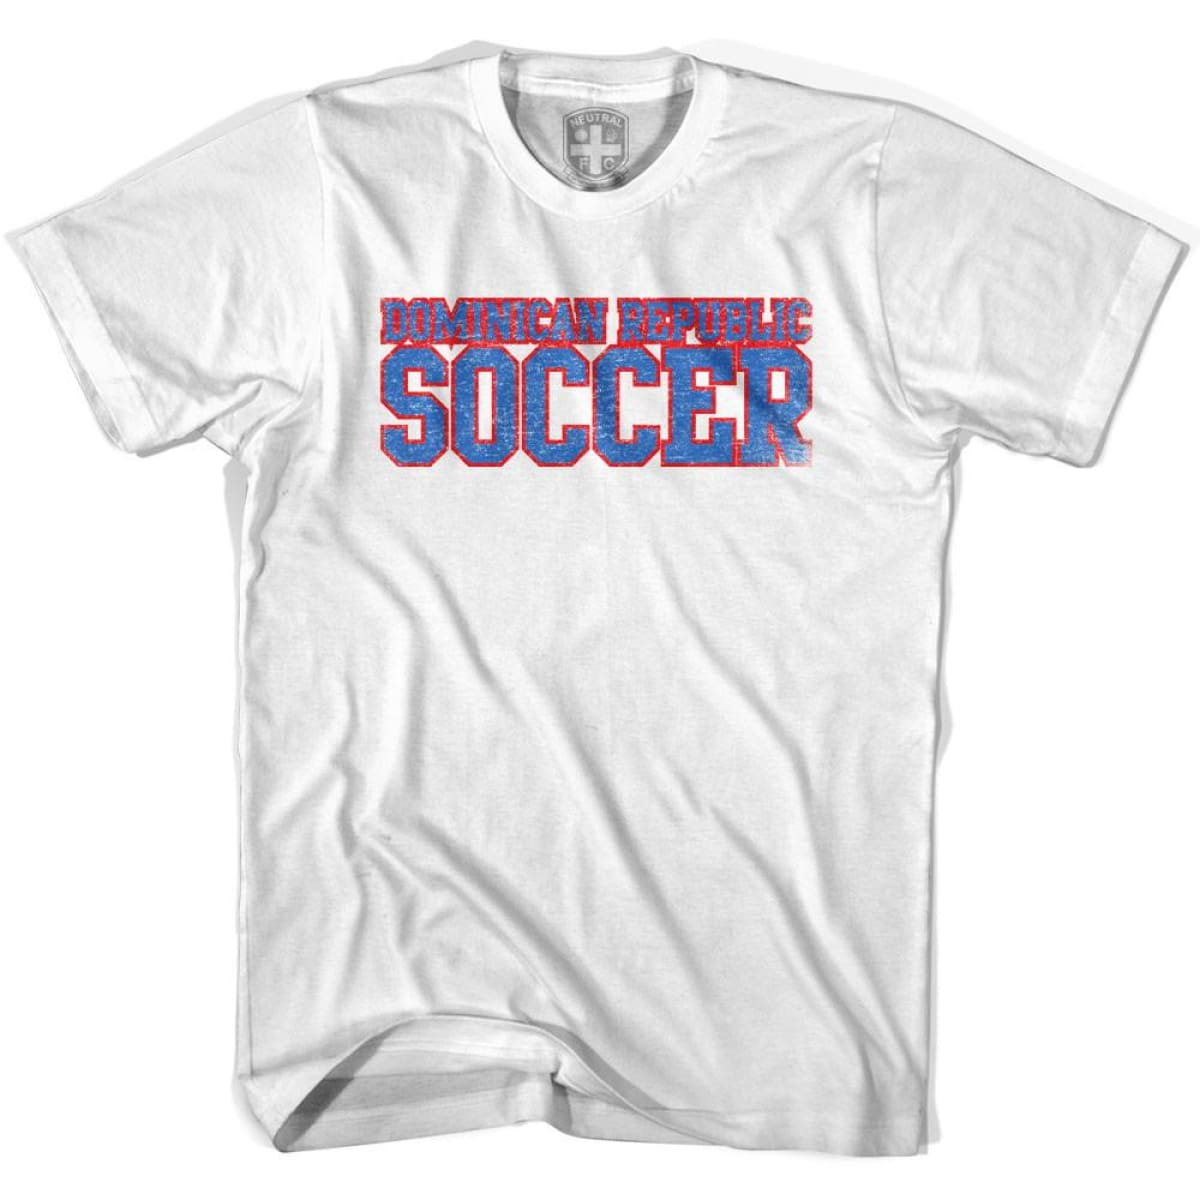 Dominican Republic Soccer Nations World Cup T-shirt - White / Youth X-Small - Ultras Soccer T-shirts